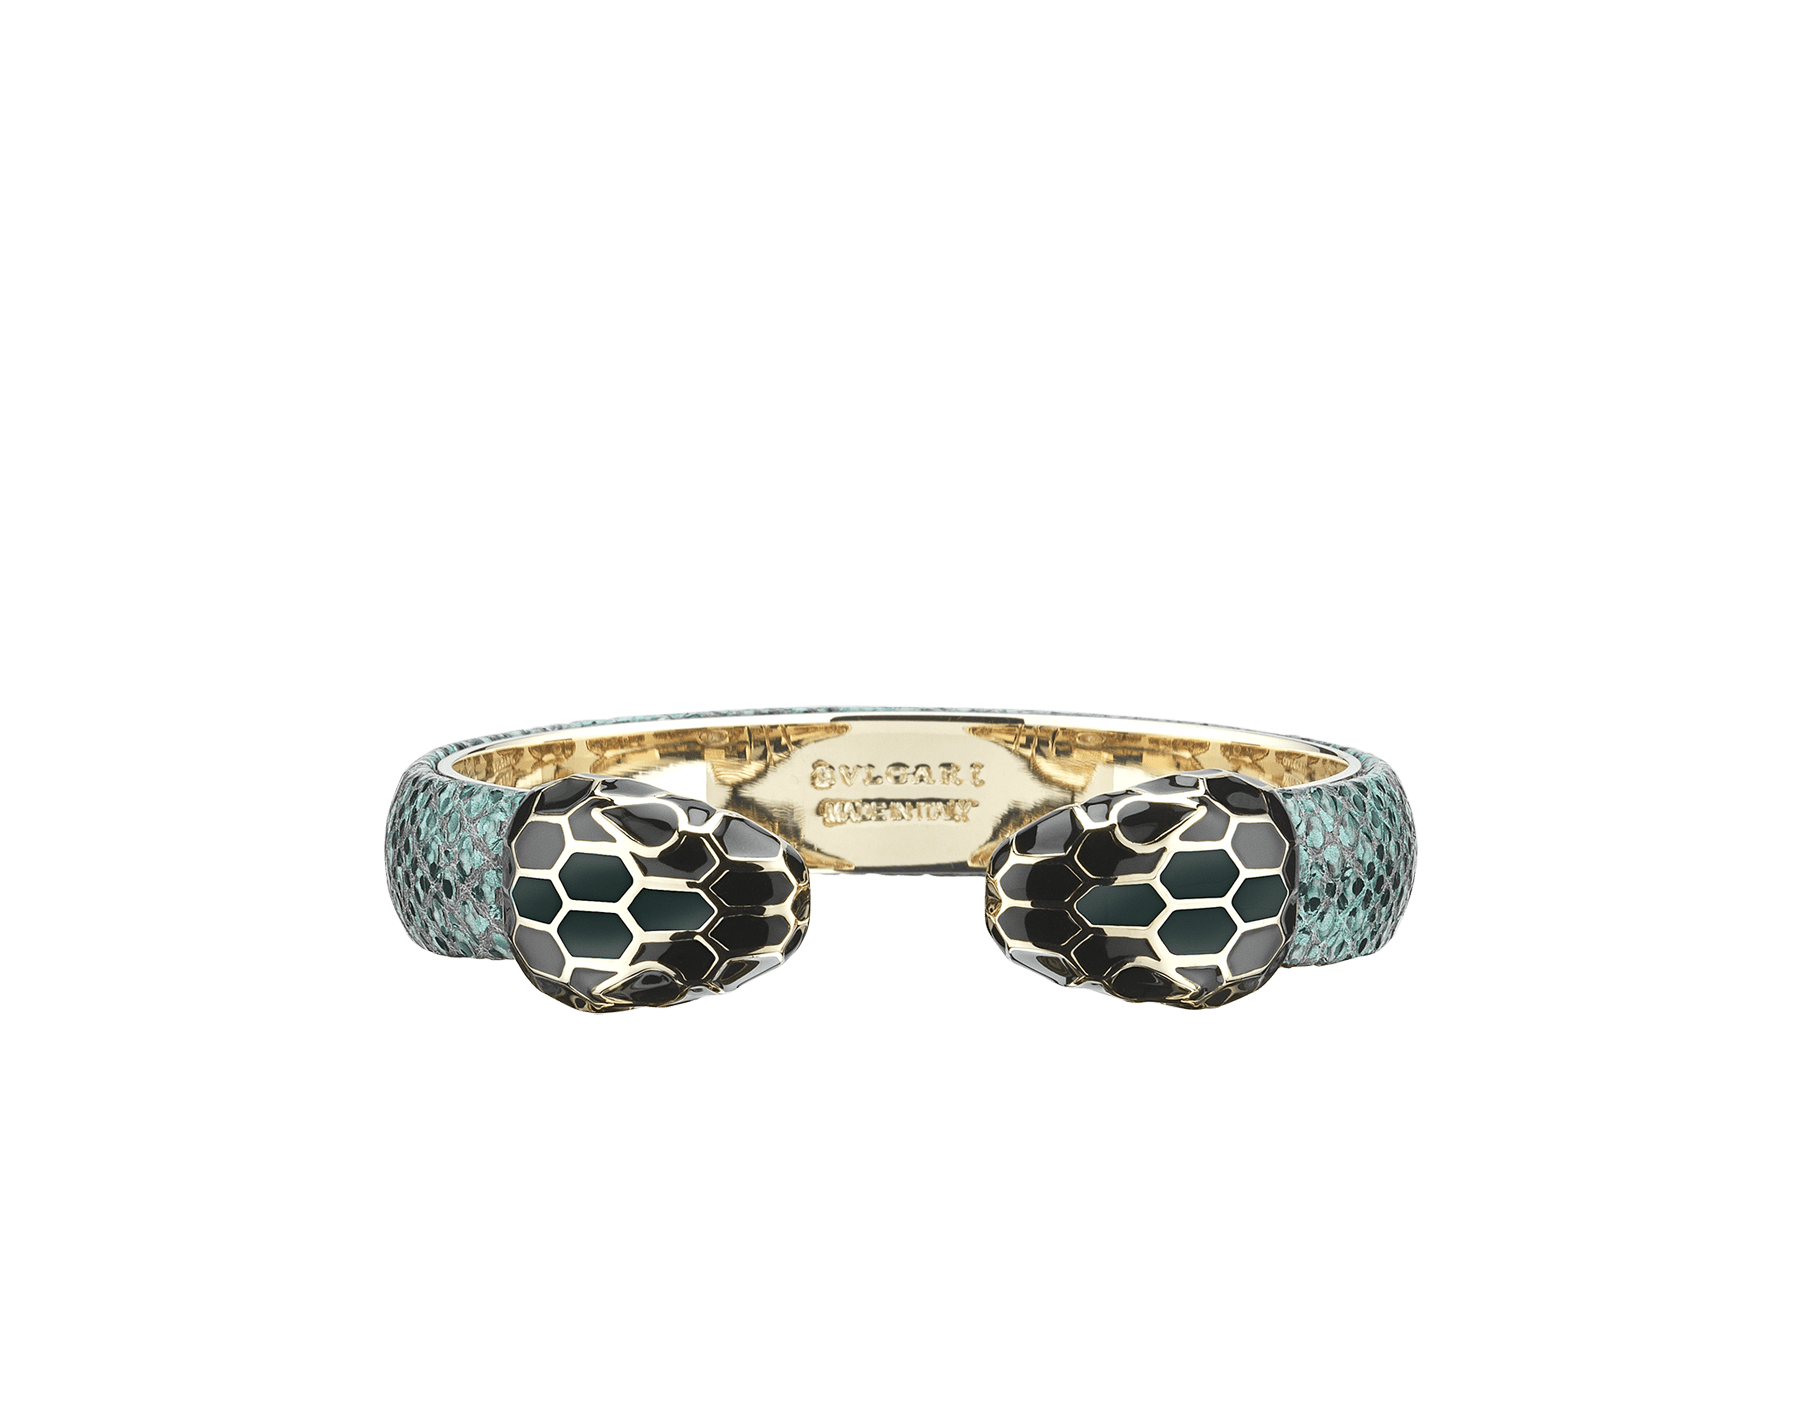 """""""Serpenti Forever"""" bangle bracelet in forest emerald metallic karung skin and light gold-plated brass hardware. Perfect to accessorise a day-to-night look, this model features an iconic contraire snakehead décor enamelled in black and forest emerald and finished with seductive black enamel eyes. SPContr-MK-FE image 1"""